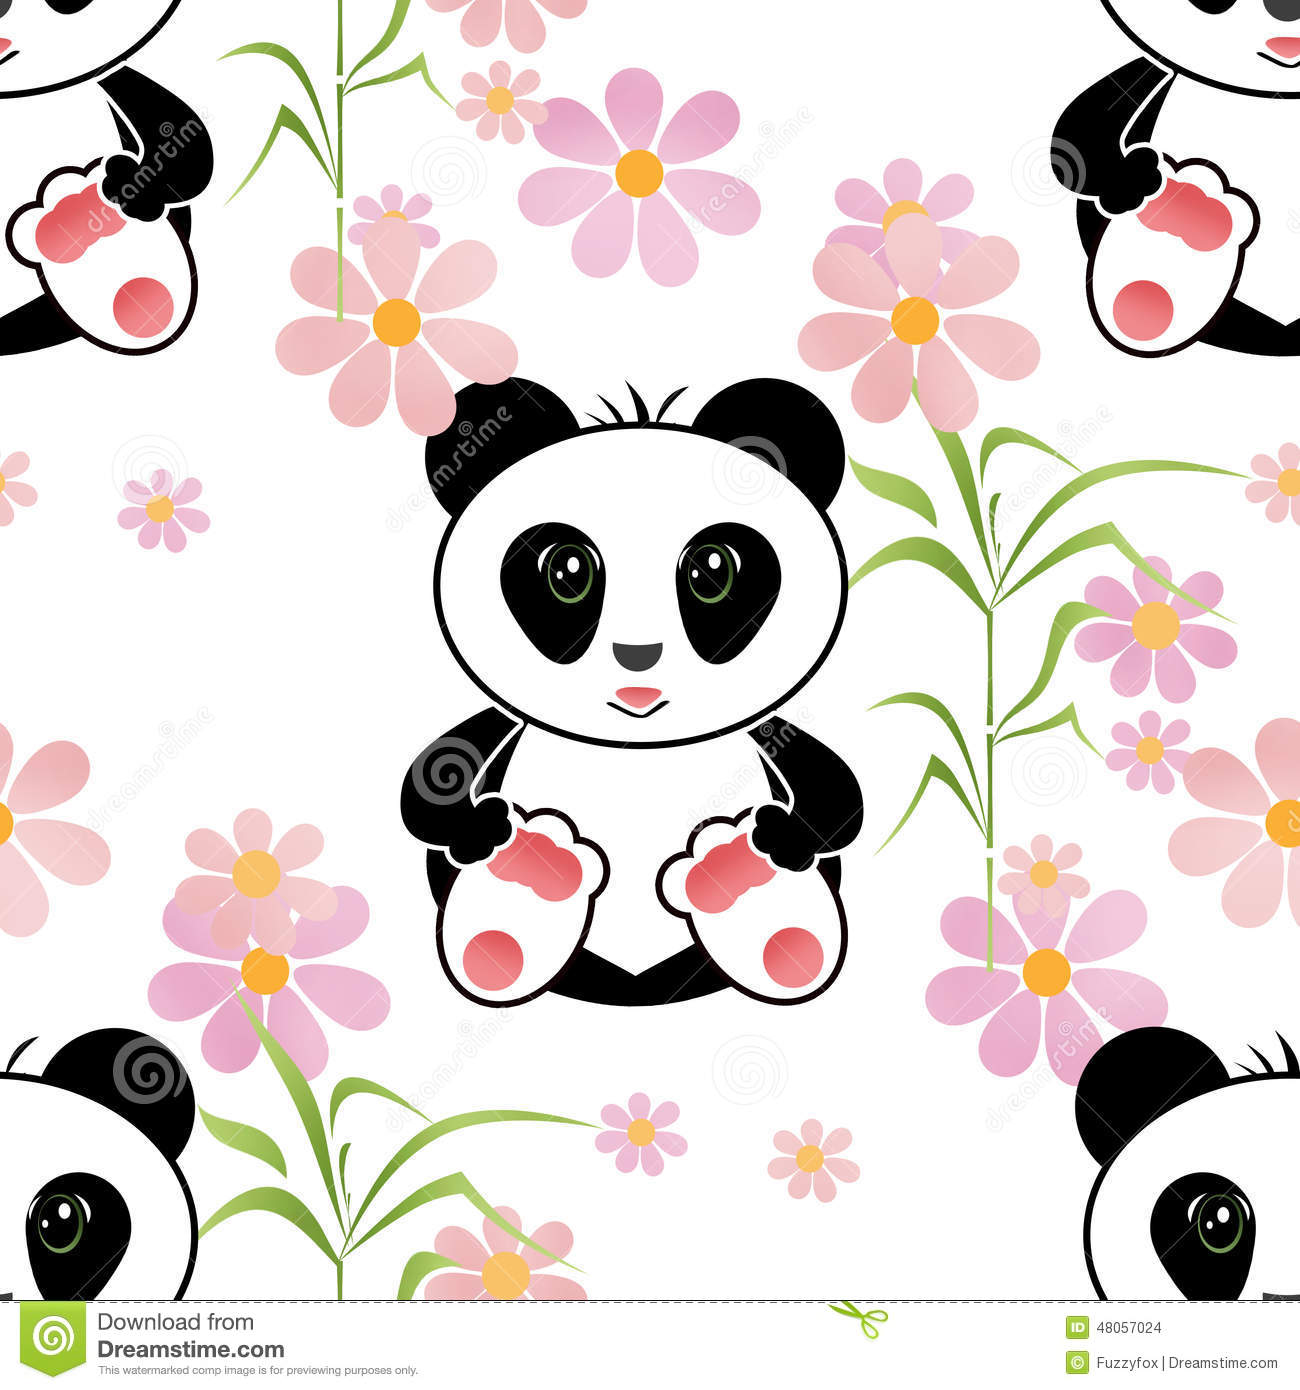 Seamless Asia Panda Bear Kids Illustration Background Pattern Stock ...